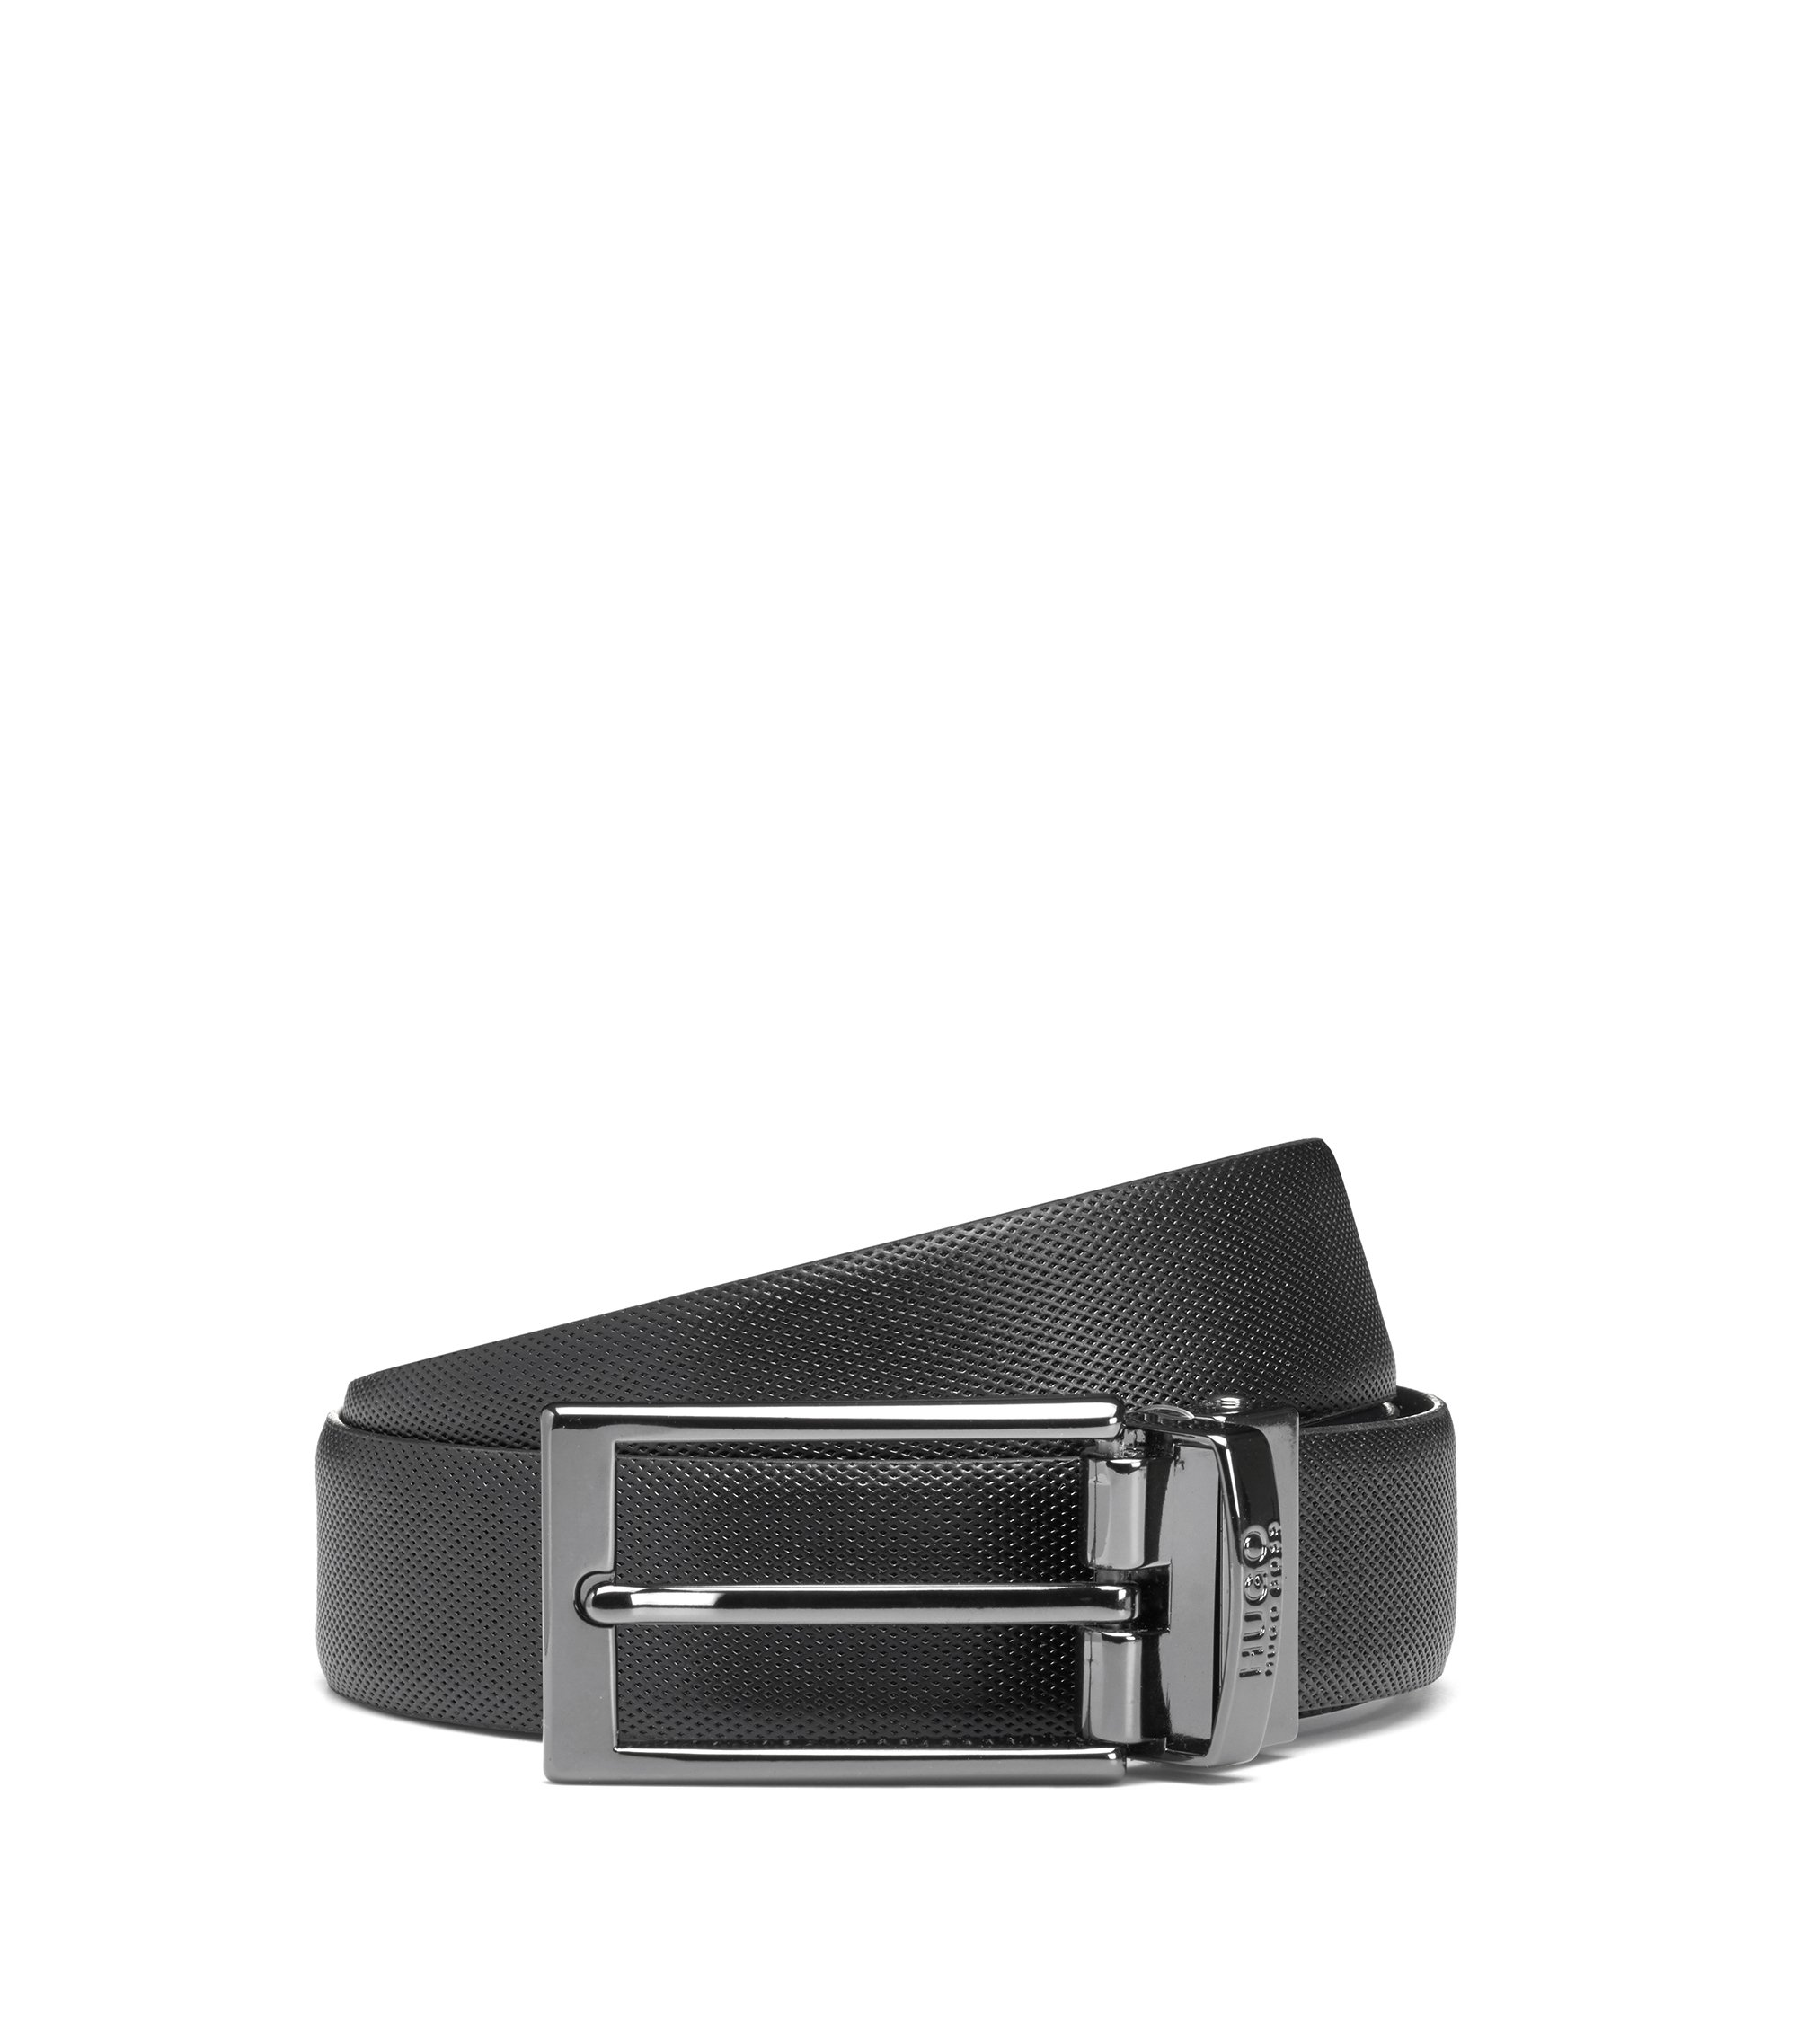 Reversible leather belt with a slimline buckle, Black